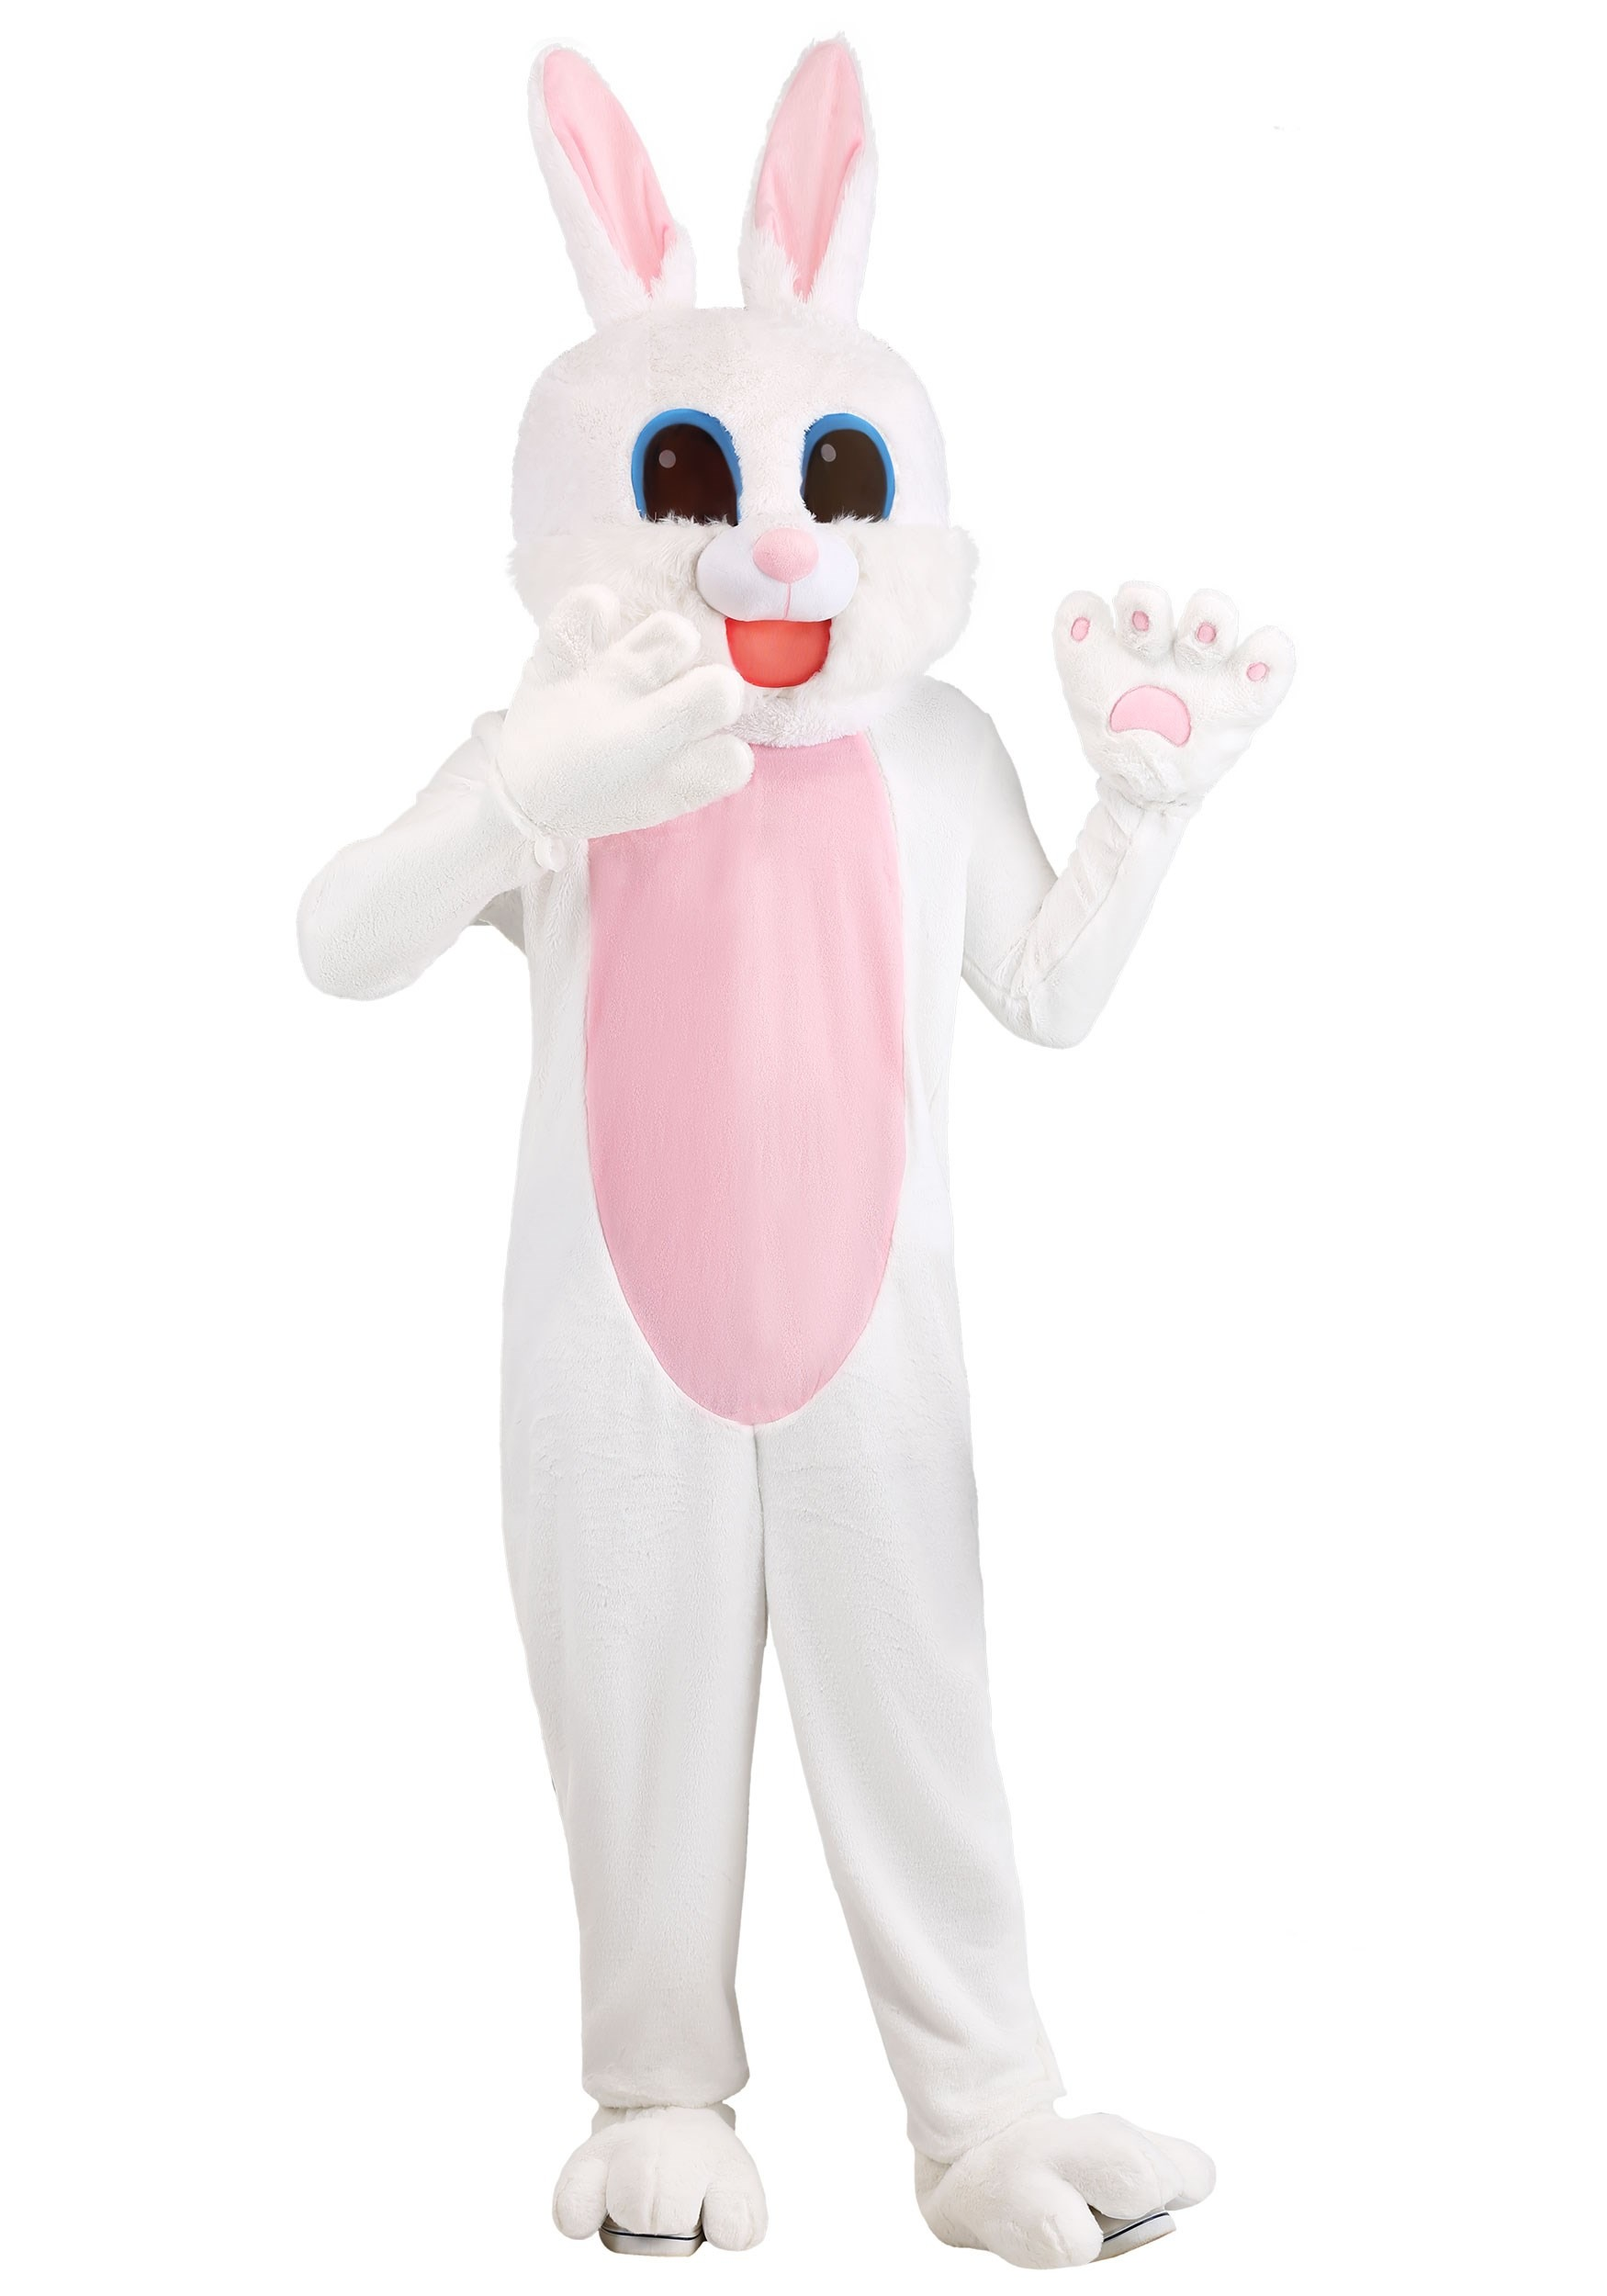 Plus Size Mascot Easter Bunny Costume for Adults